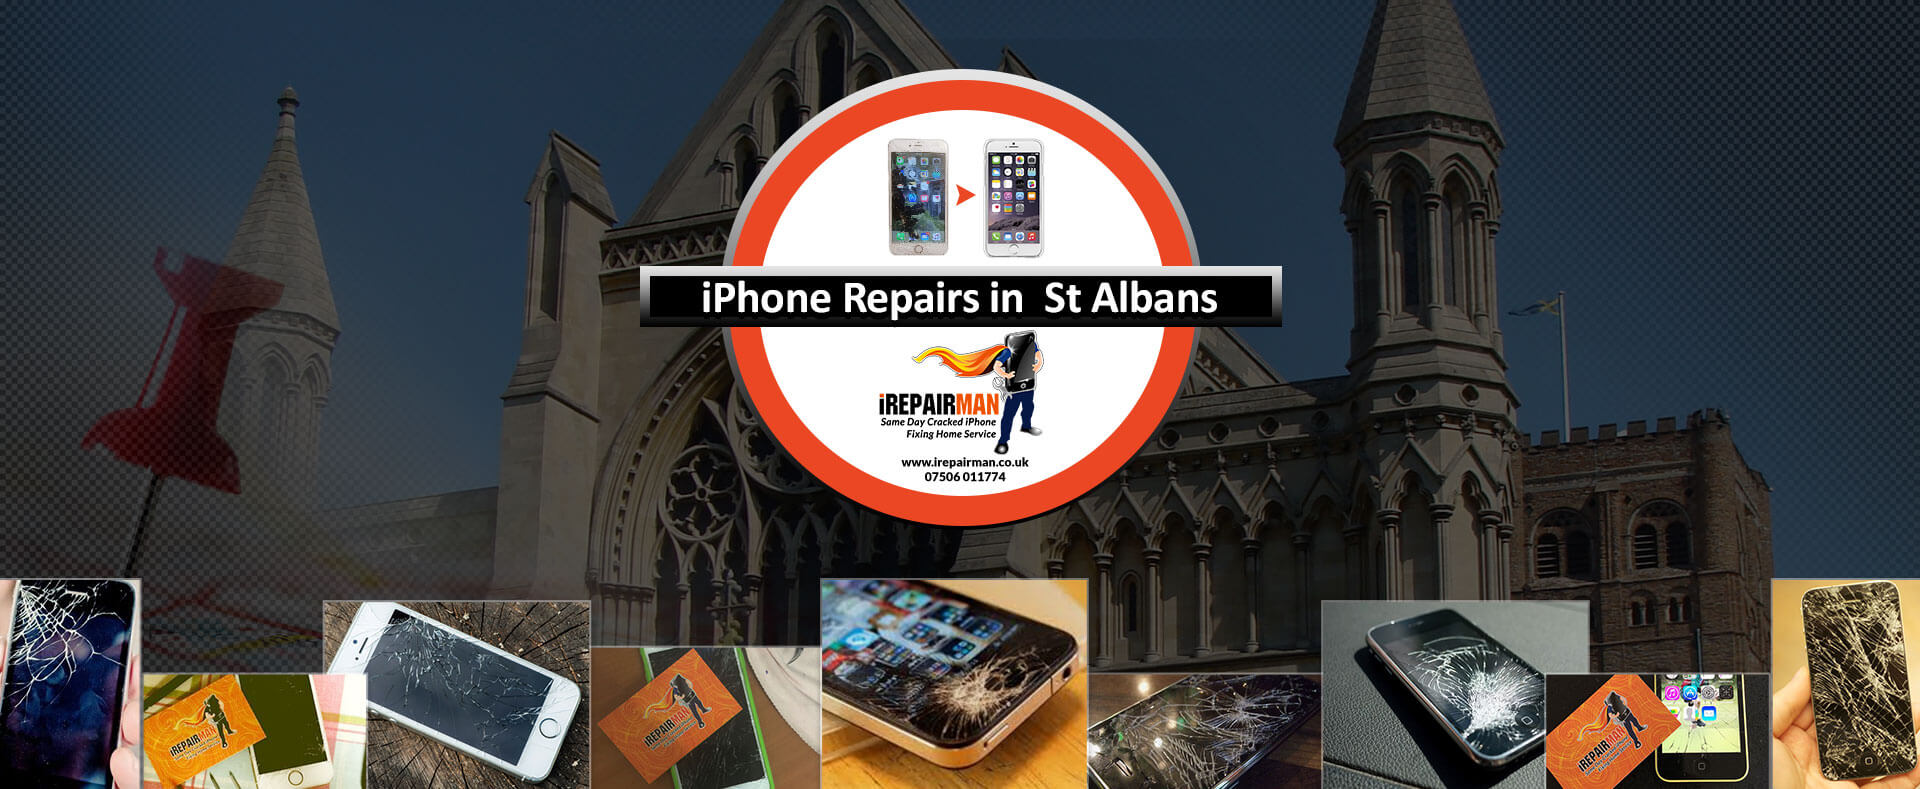 iPhone Repairs in St Albans